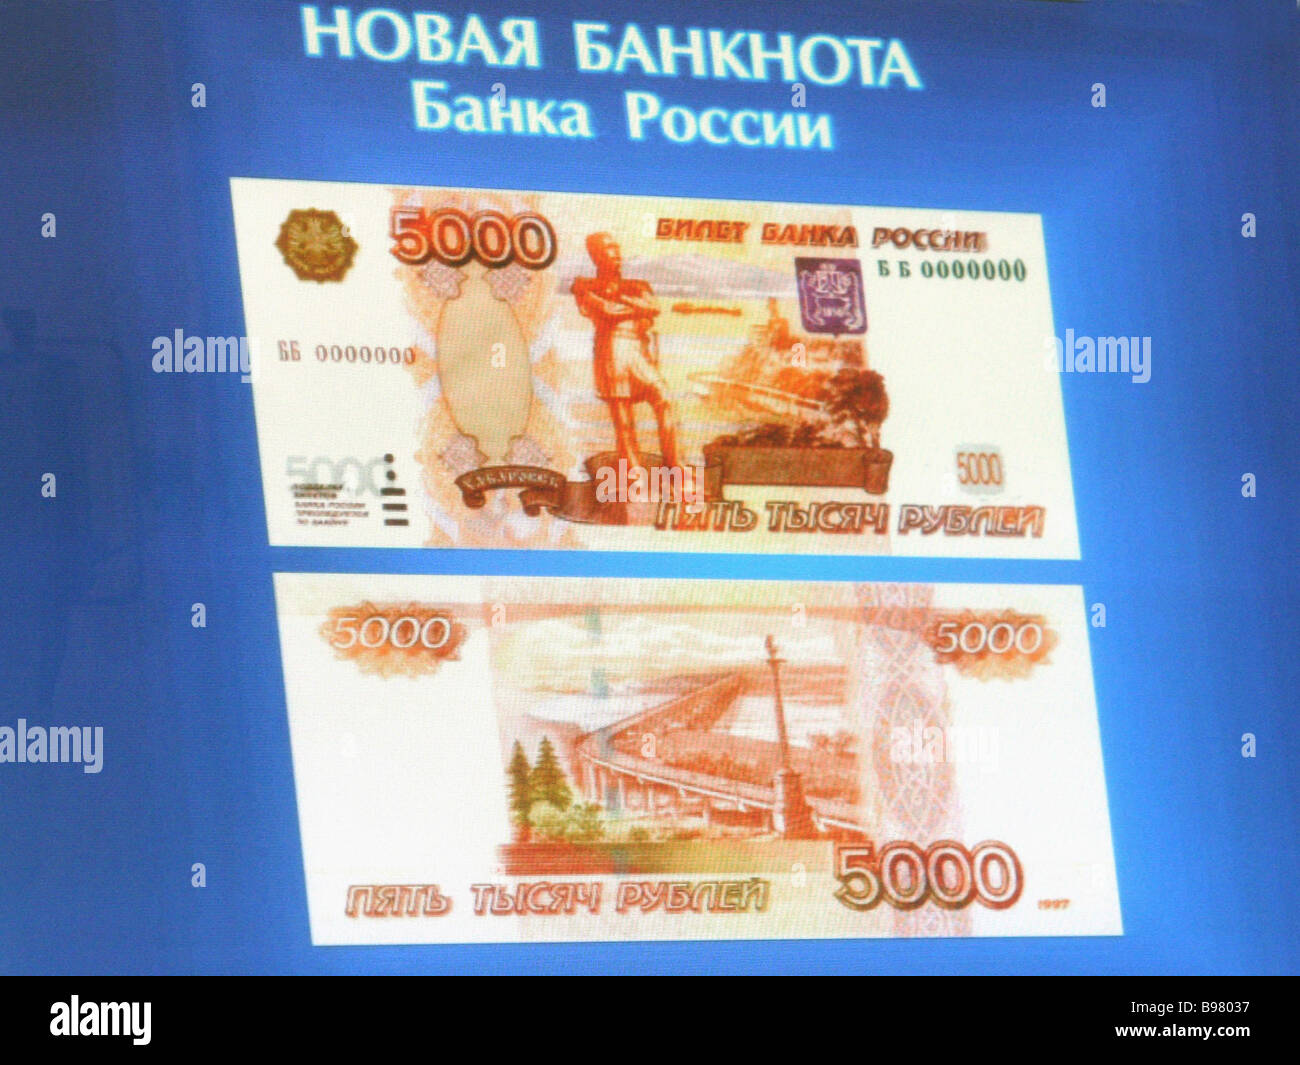 Russia s new 5 000 ruble banknote - Stock Image